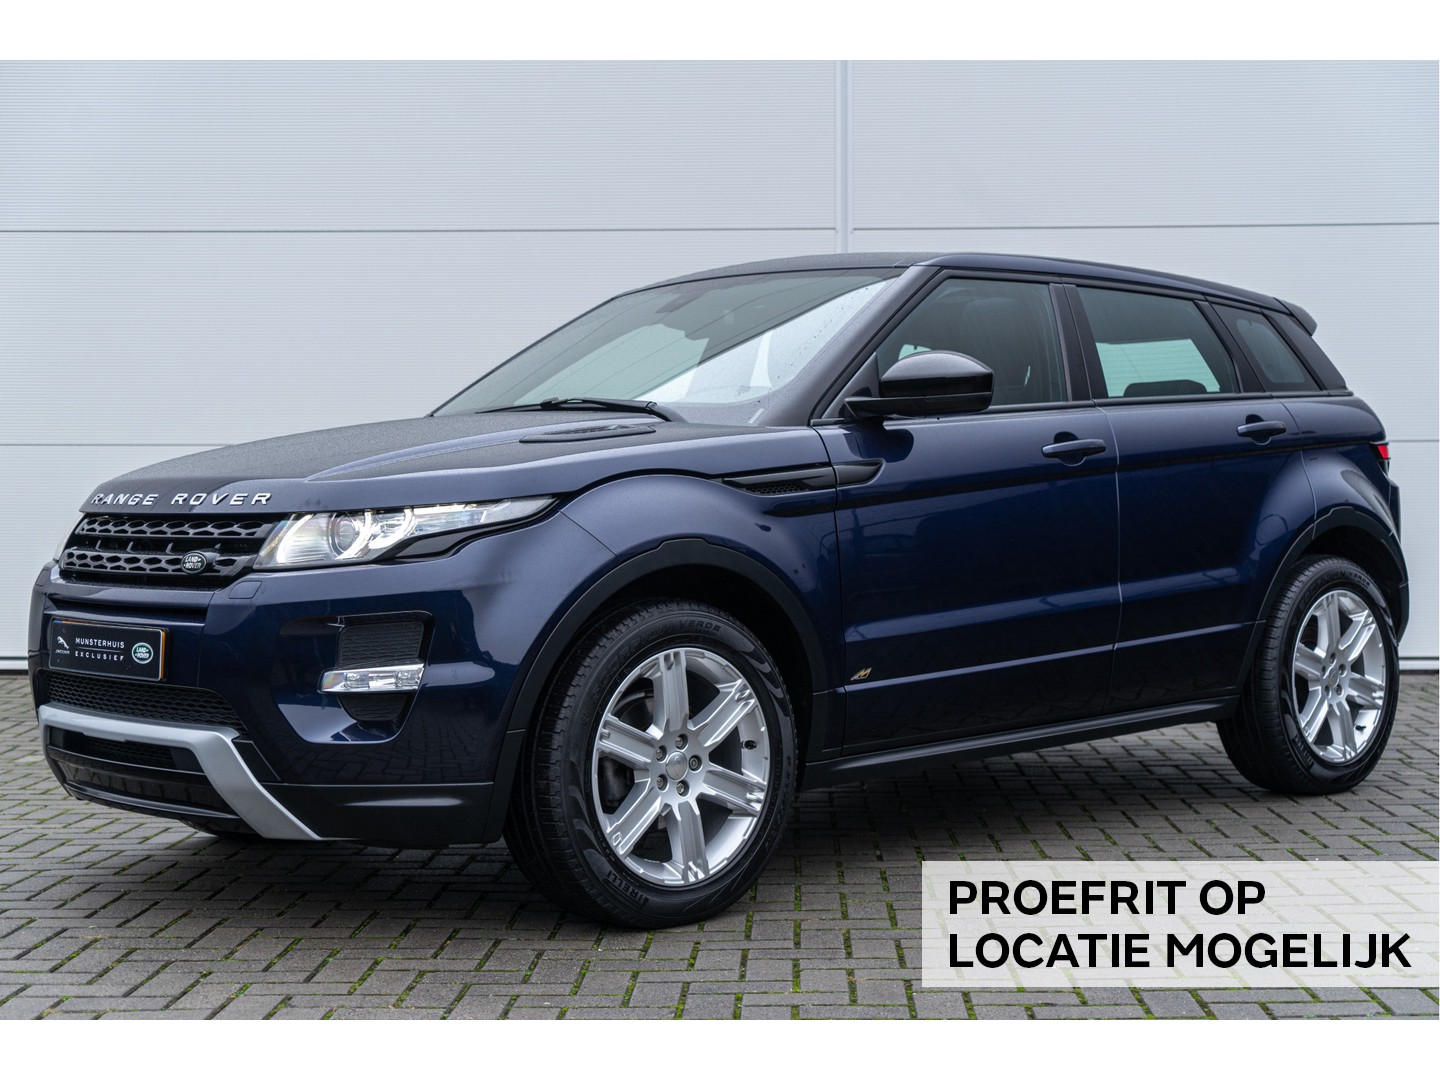 Land rover Range rover evoque 2.2 ed4 2wd dynamic - meridian audio - all-season banden